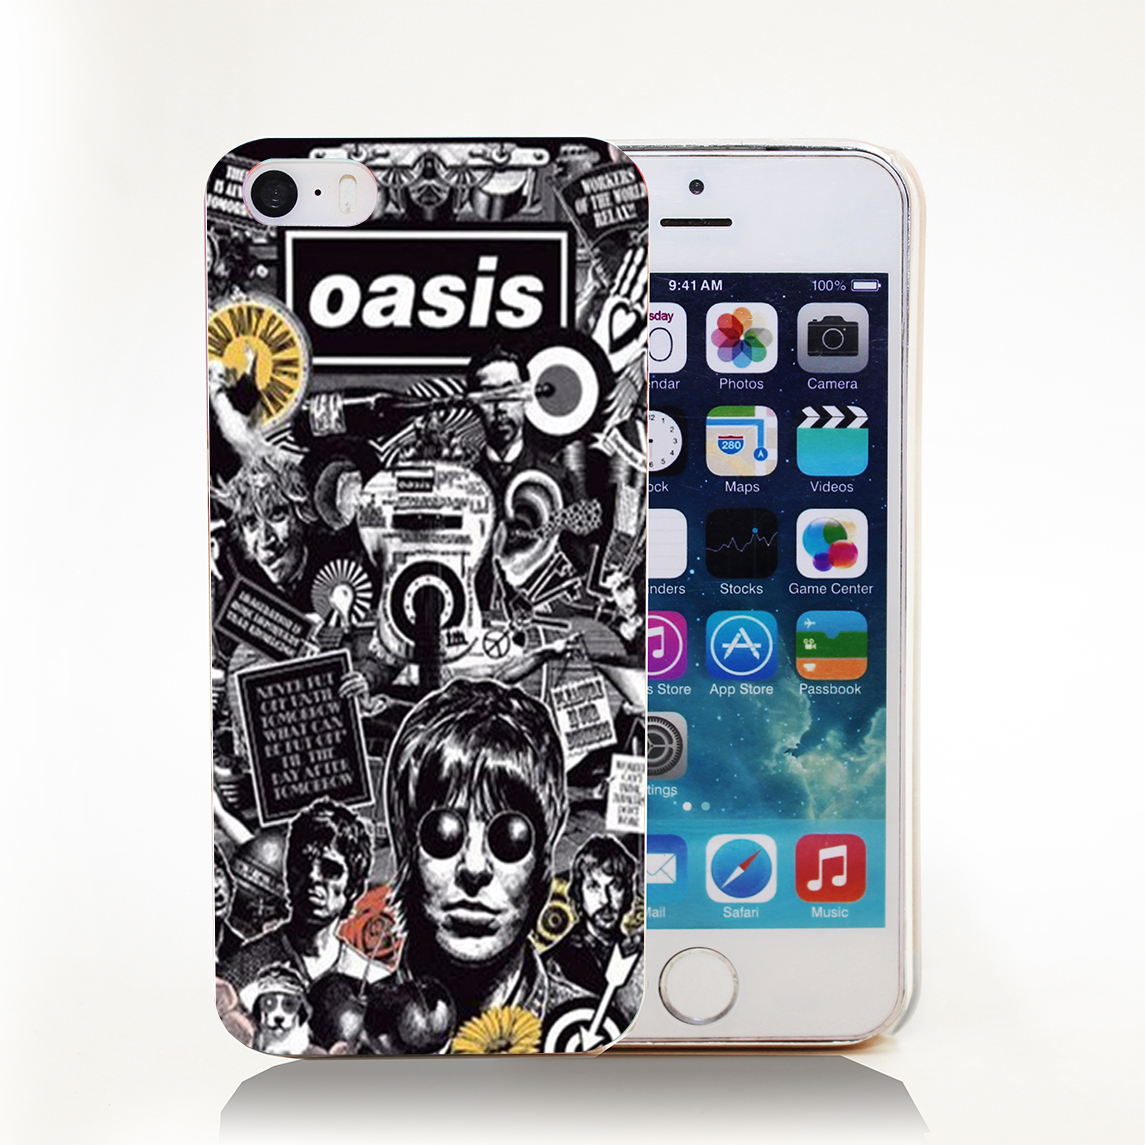 OASIS Band Hard Transparent Cover Case for iPhone 4 4s 5 5s 5c 6 6s Protect Phone Cases